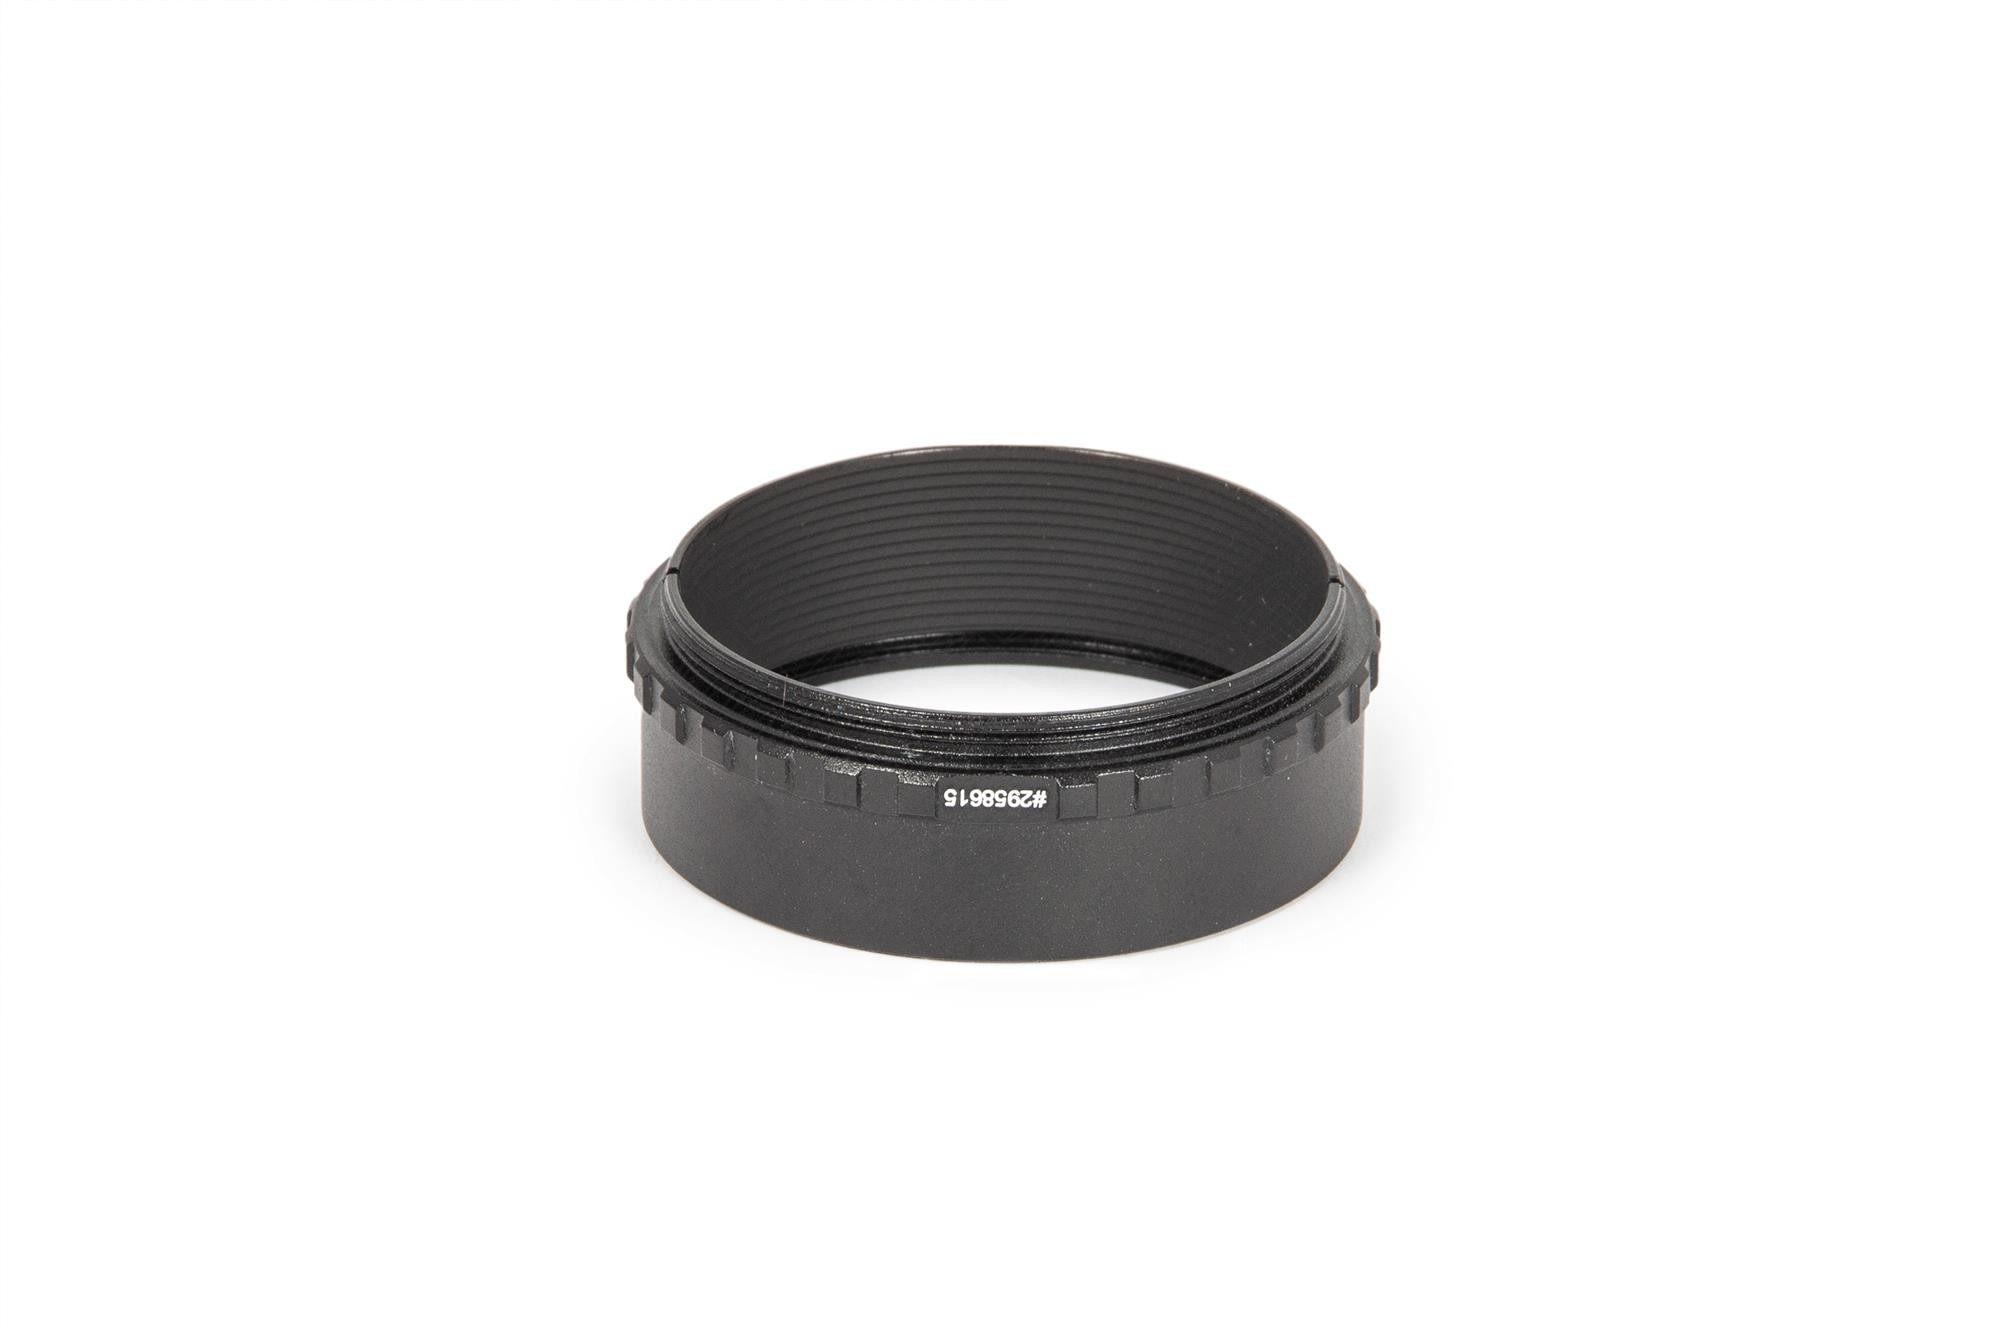 Baader M48 extension tube 15 mm